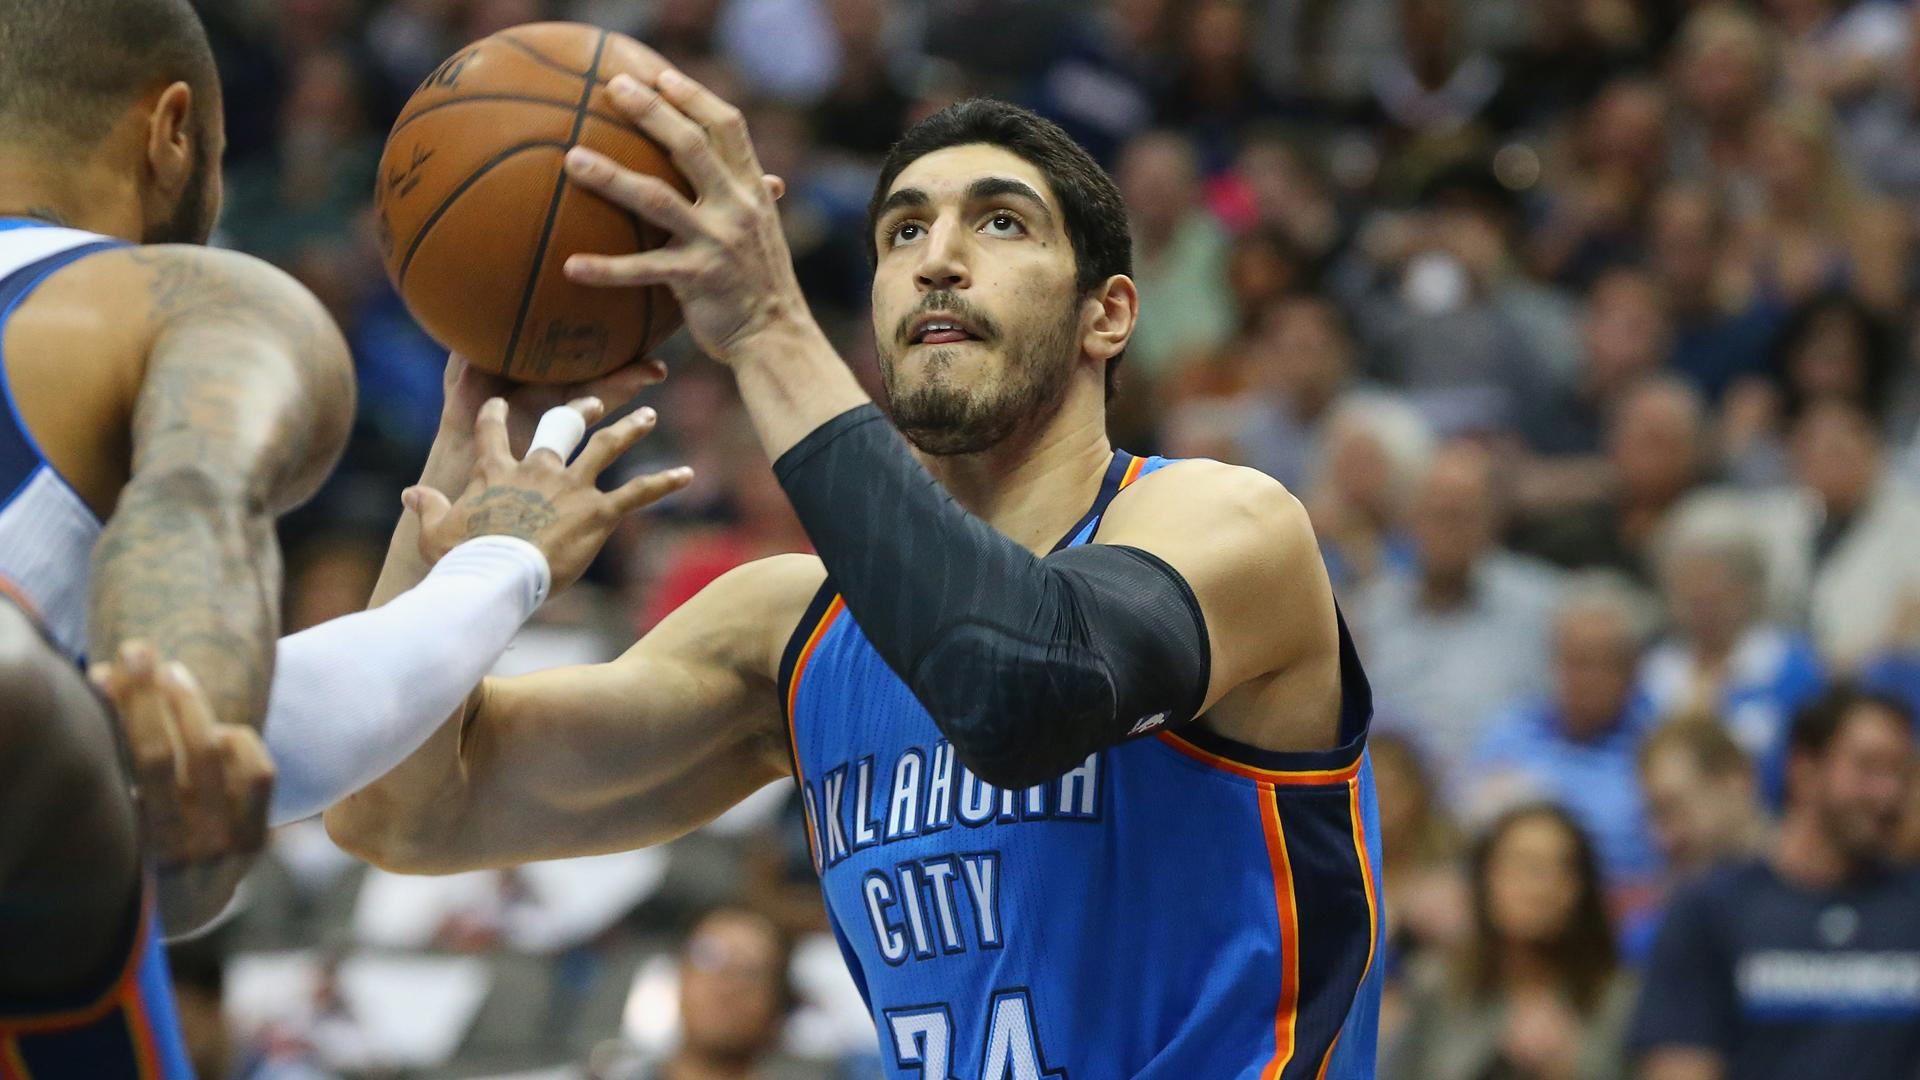 enes kanter u0026 39 s family disowns him over turkey u0026 39 s political